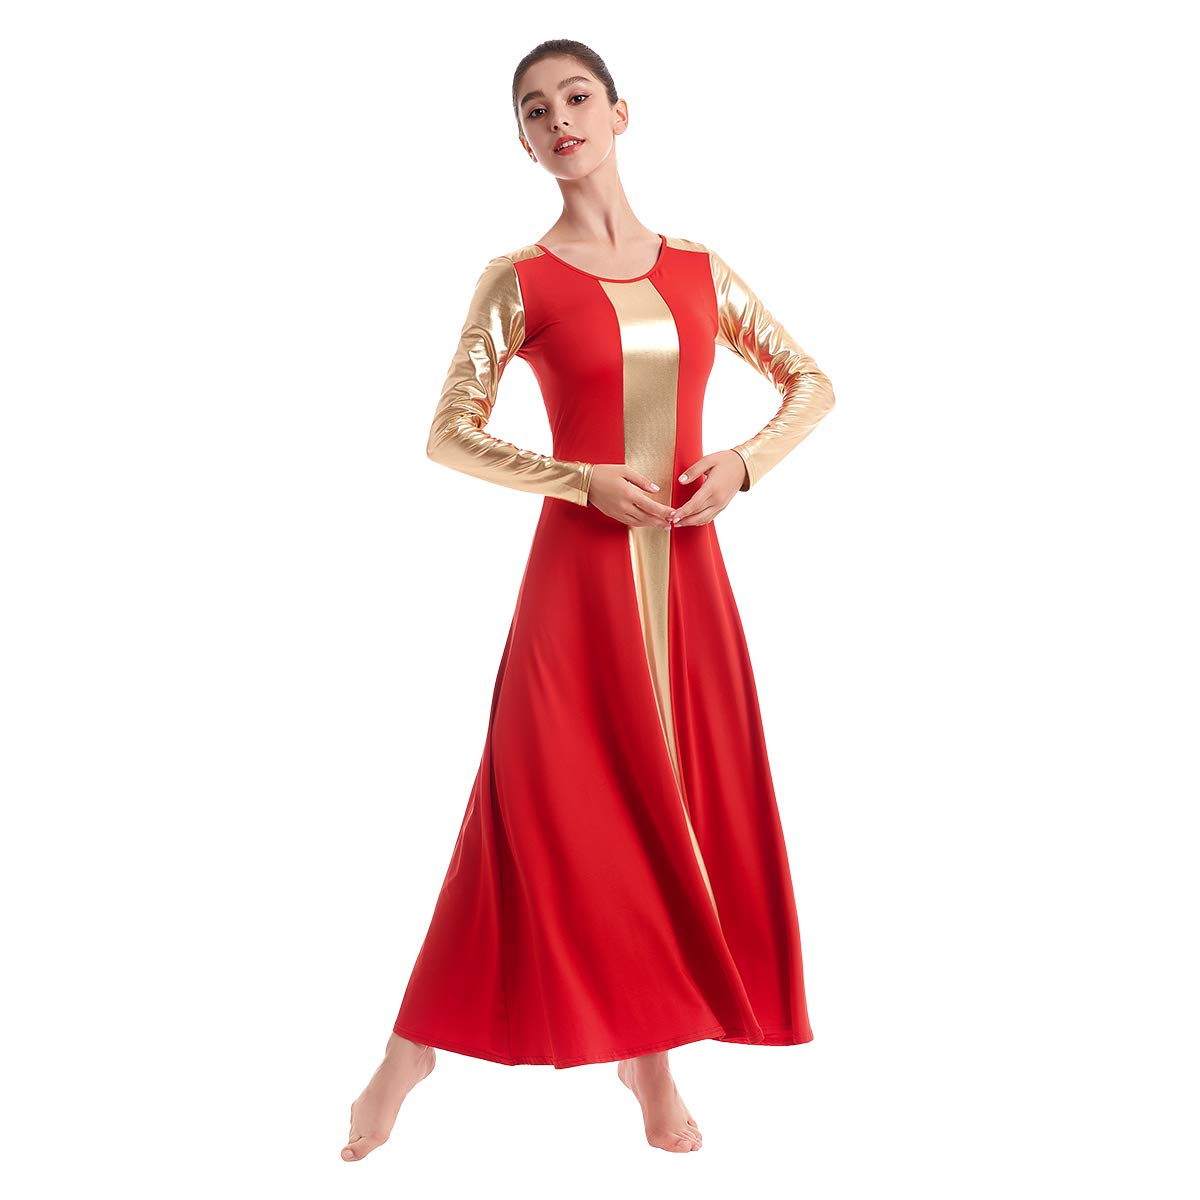 IBAKOM Womens Liturgical Praise Lyrical Church Dance Dress Tunic Circle Skirt Christian Worship Metallic Bi Color Block Dancewear Ballet Costume Red-Gold L by IBAKOM